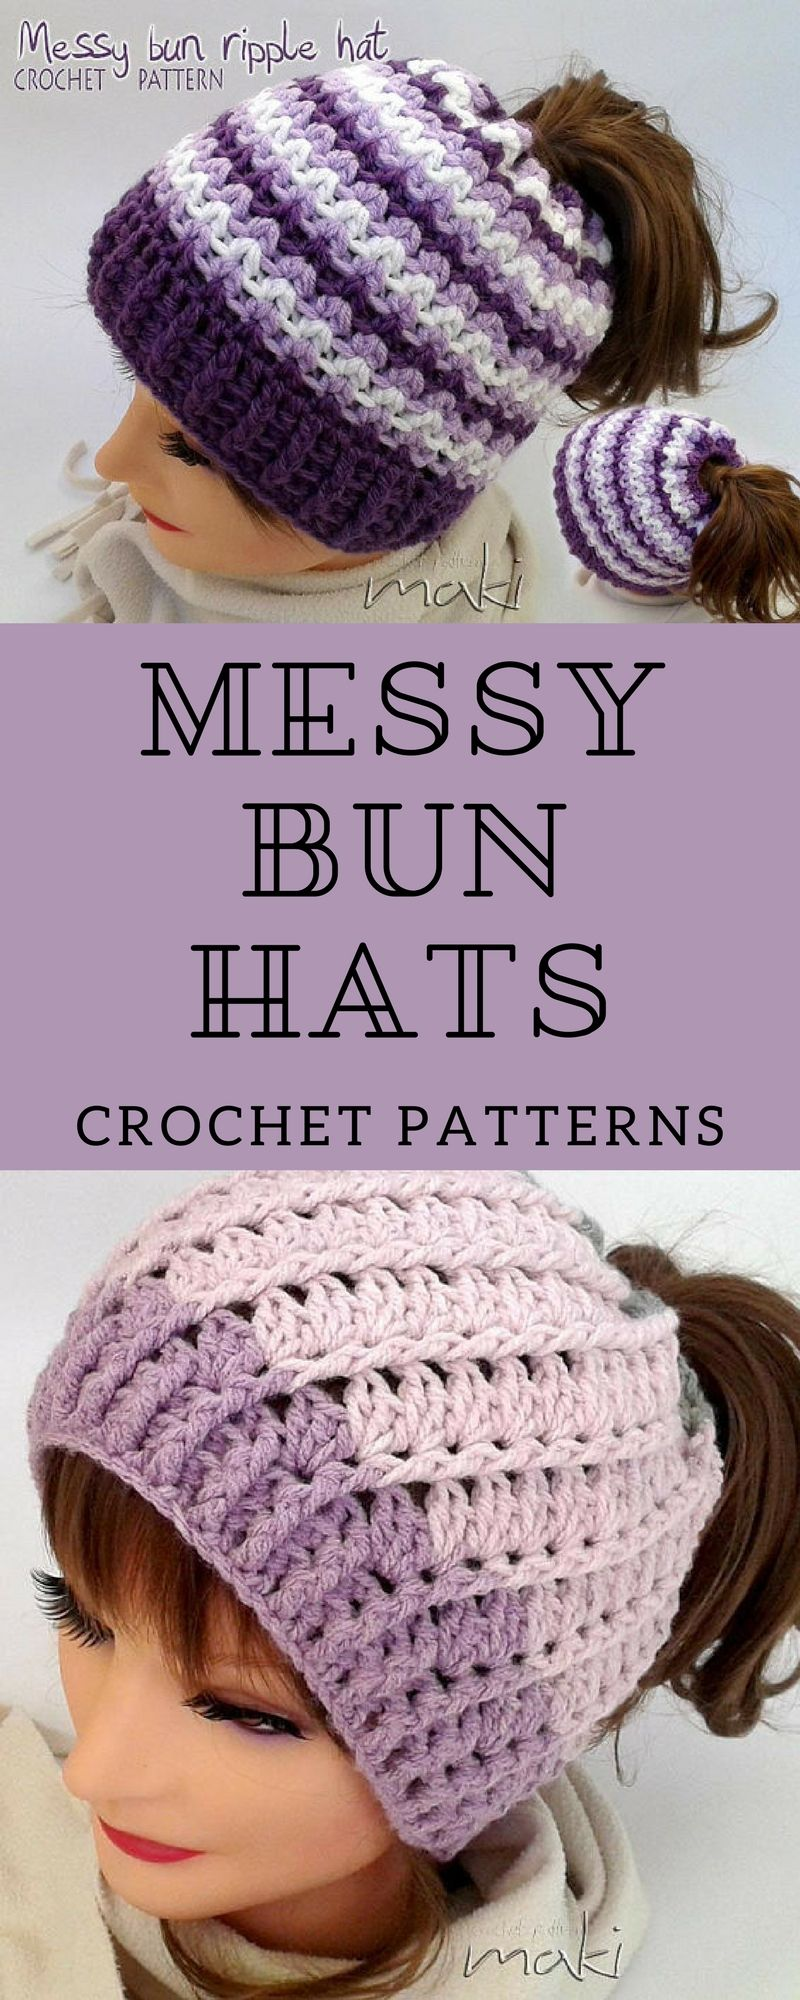 Perfectly purple intricate patterned messy bun hat crochet patterns ...